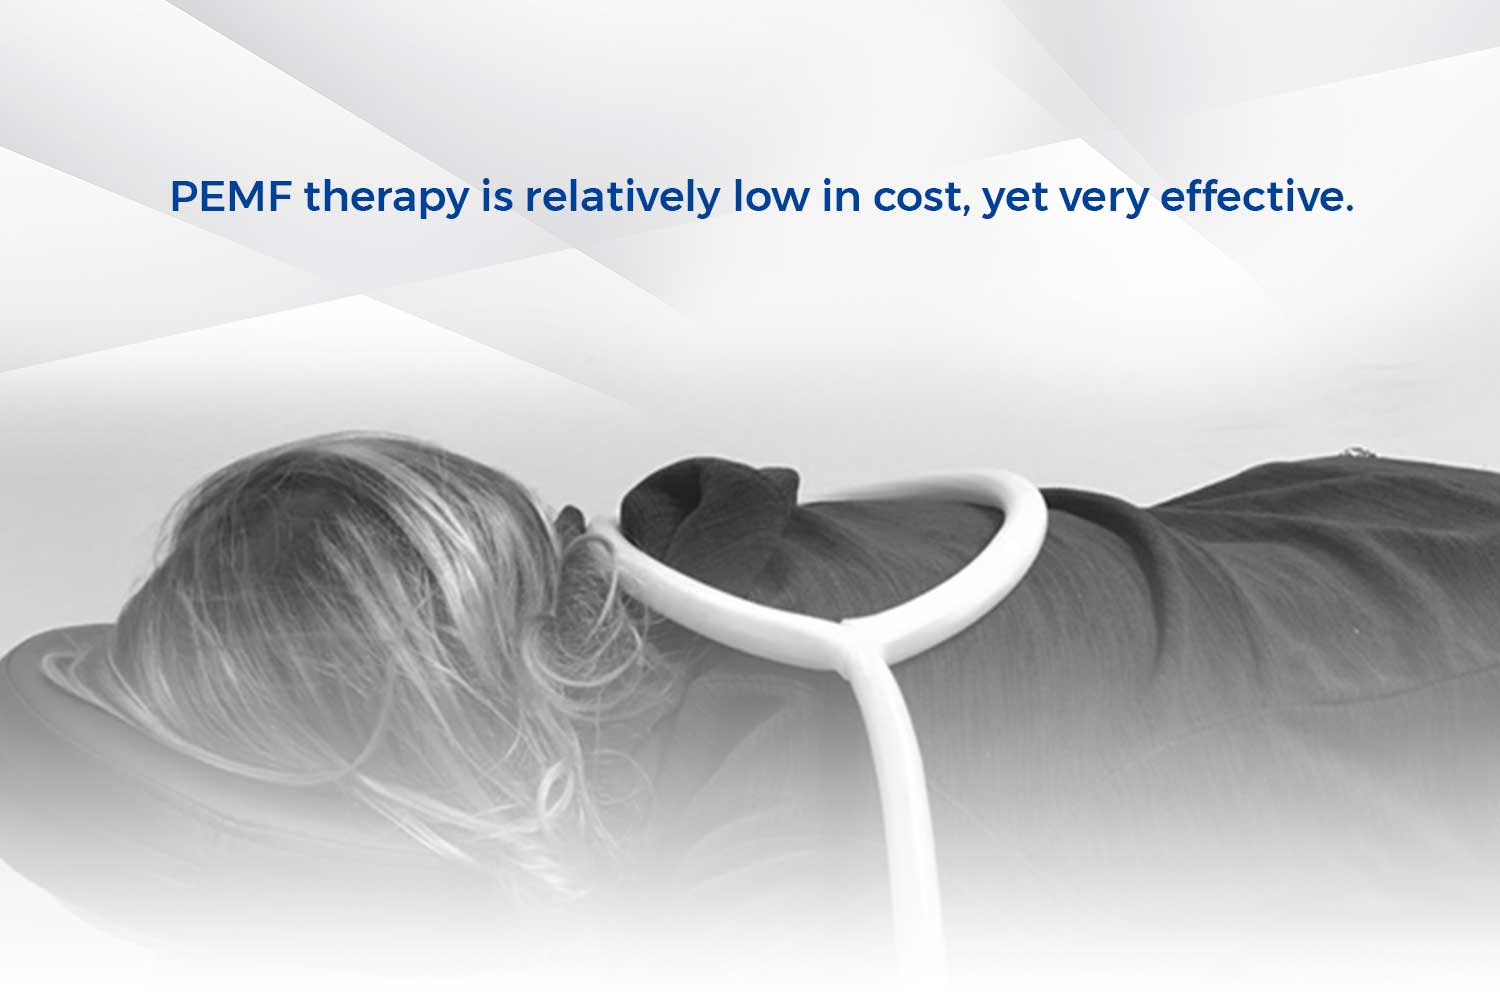 PEMF therapy is relatively low in cost, yet very effective